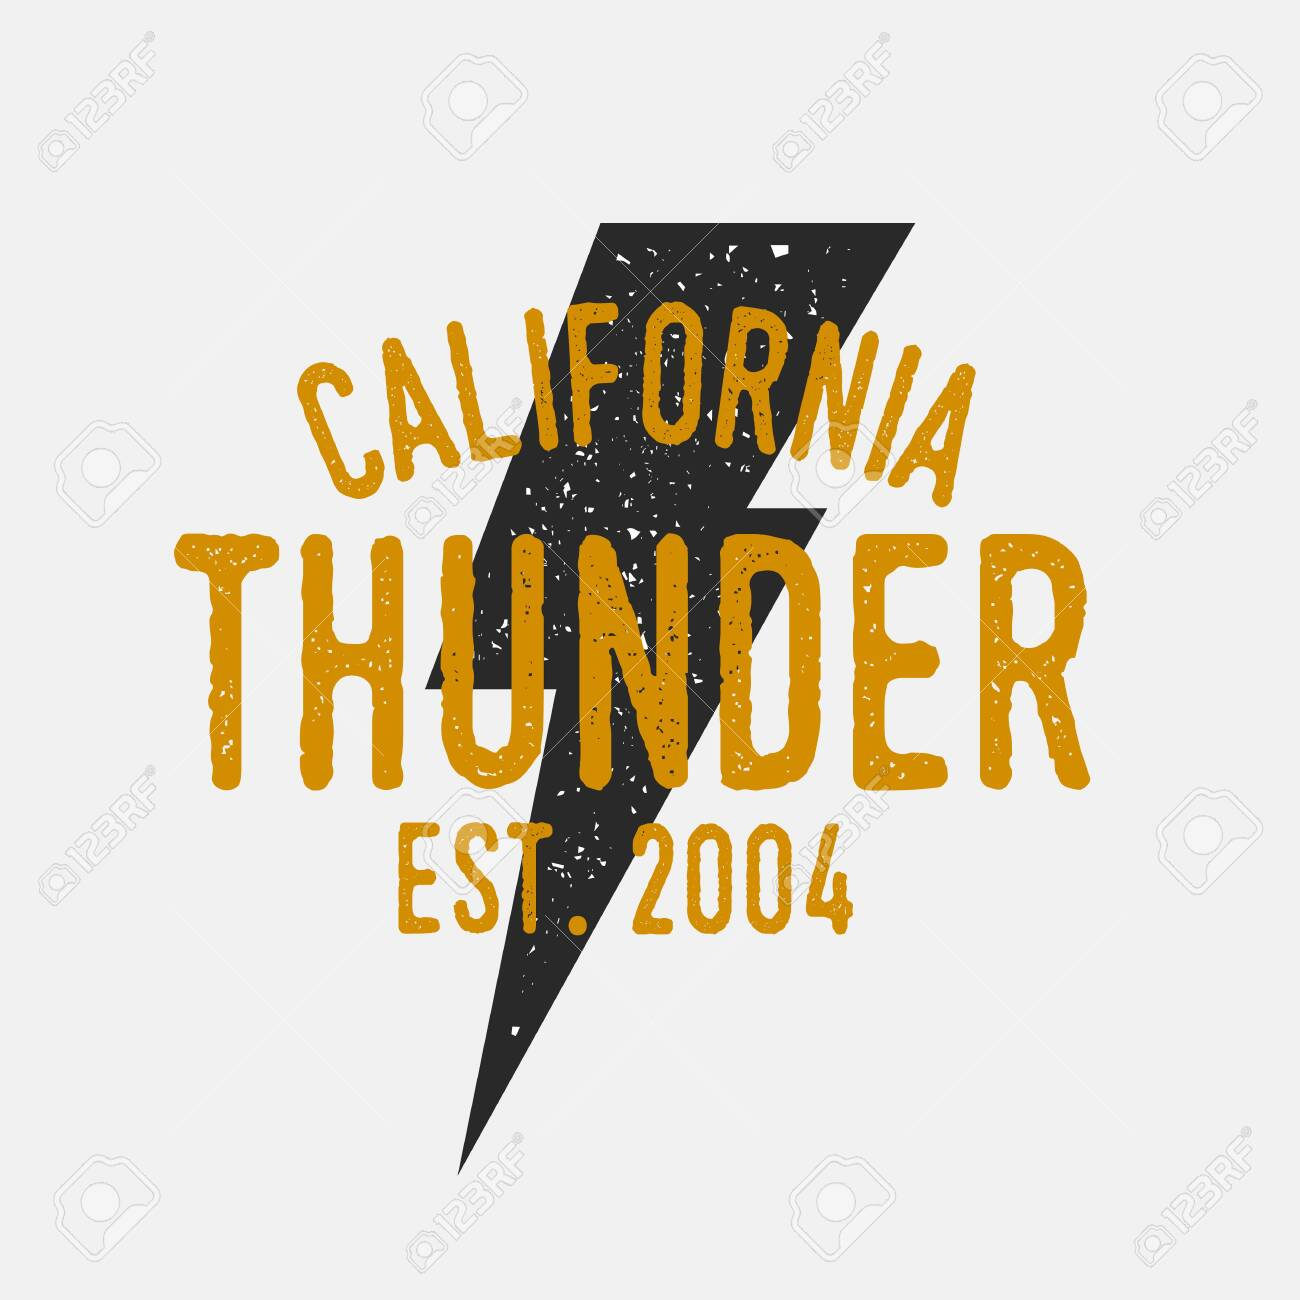 vintage thunderbolt logo vector logo template with grunge texture royalty free cliparts vectors and stock illustration image 132399538 123rf com